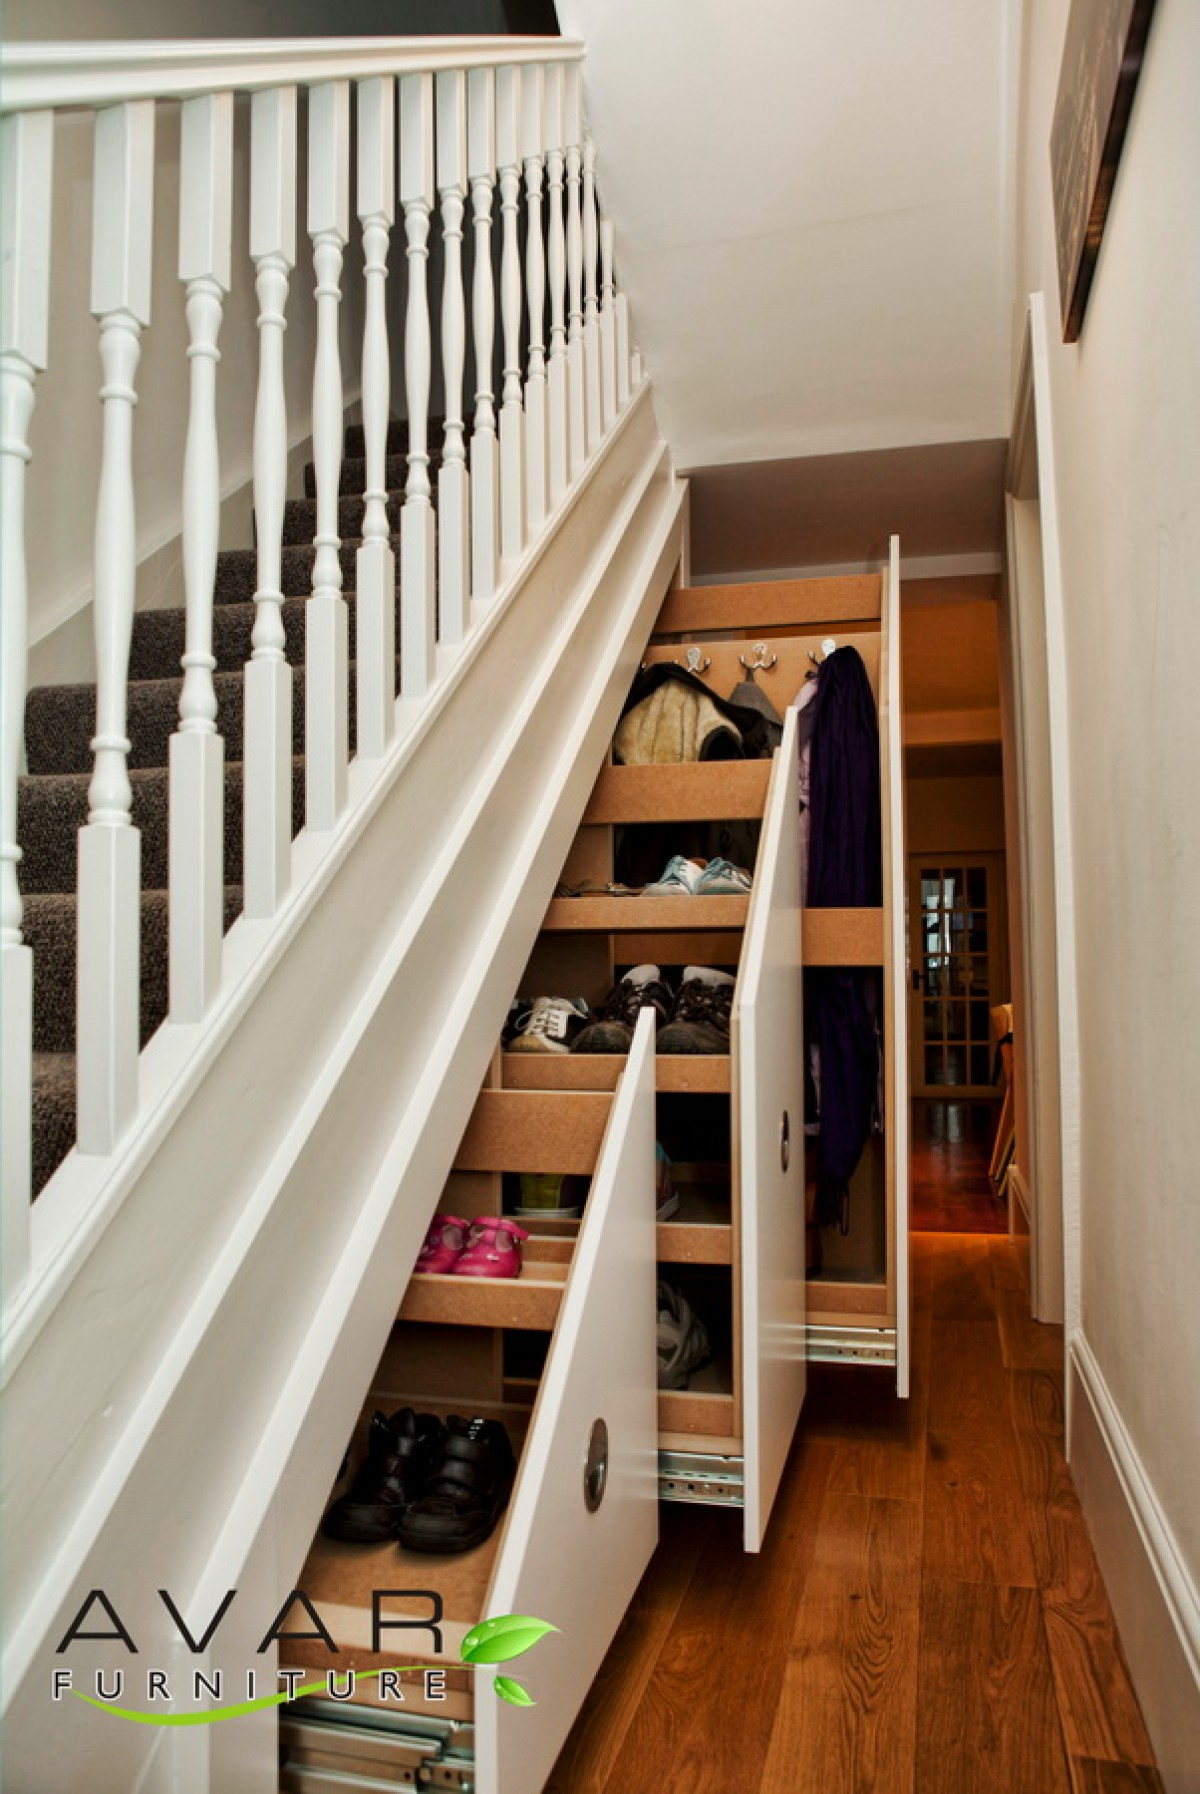 Under The Stairs Storage Ideas Home Design Inside